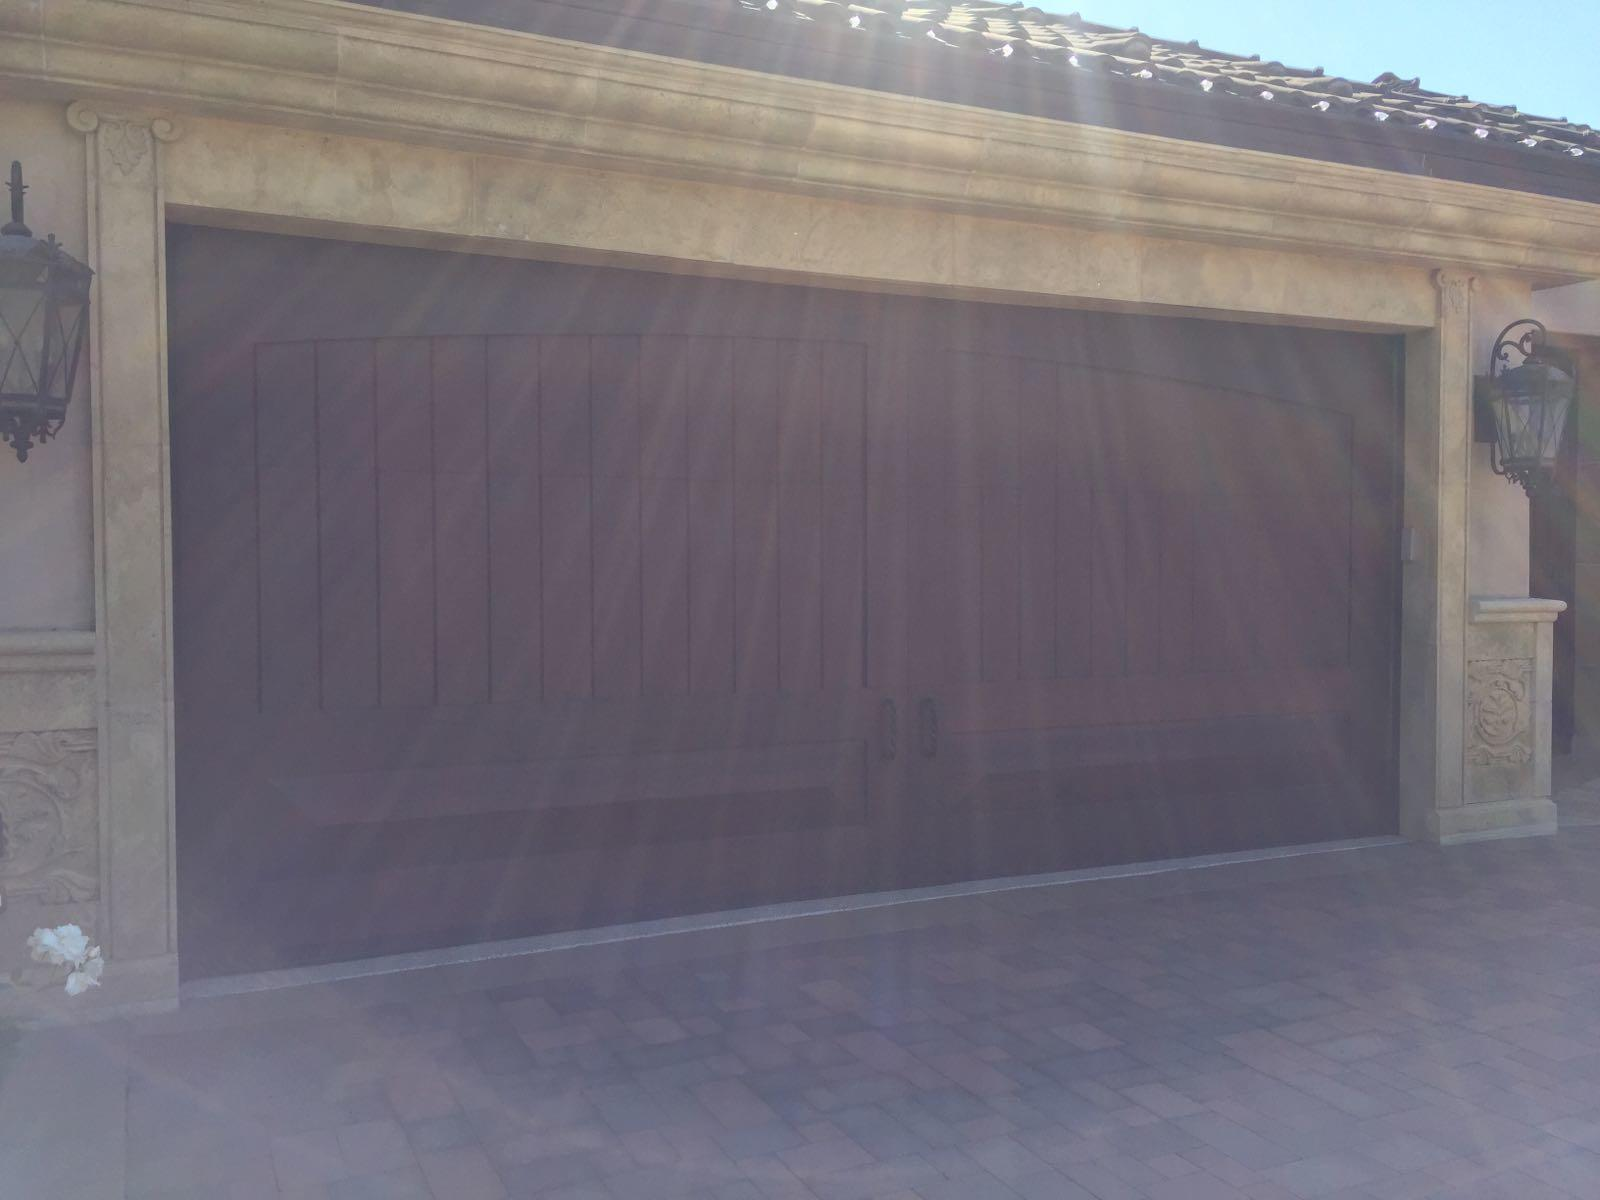 24/7 Riverside Garage Doors | Phone 951-666-3630 | Corona, CA ... on diy garage repair, this old house door repair, shower door repair, garage ideas, garage kits, home door repair, pocket door repair, sliding door repair, garage sale signs, garage car repair, refrigerator door repair, anderson storm door repair, interior door repair, cabinet door repair, backyard door repair, door jamb repair, garage storage, auto door repair, garage doors product, garage walls,